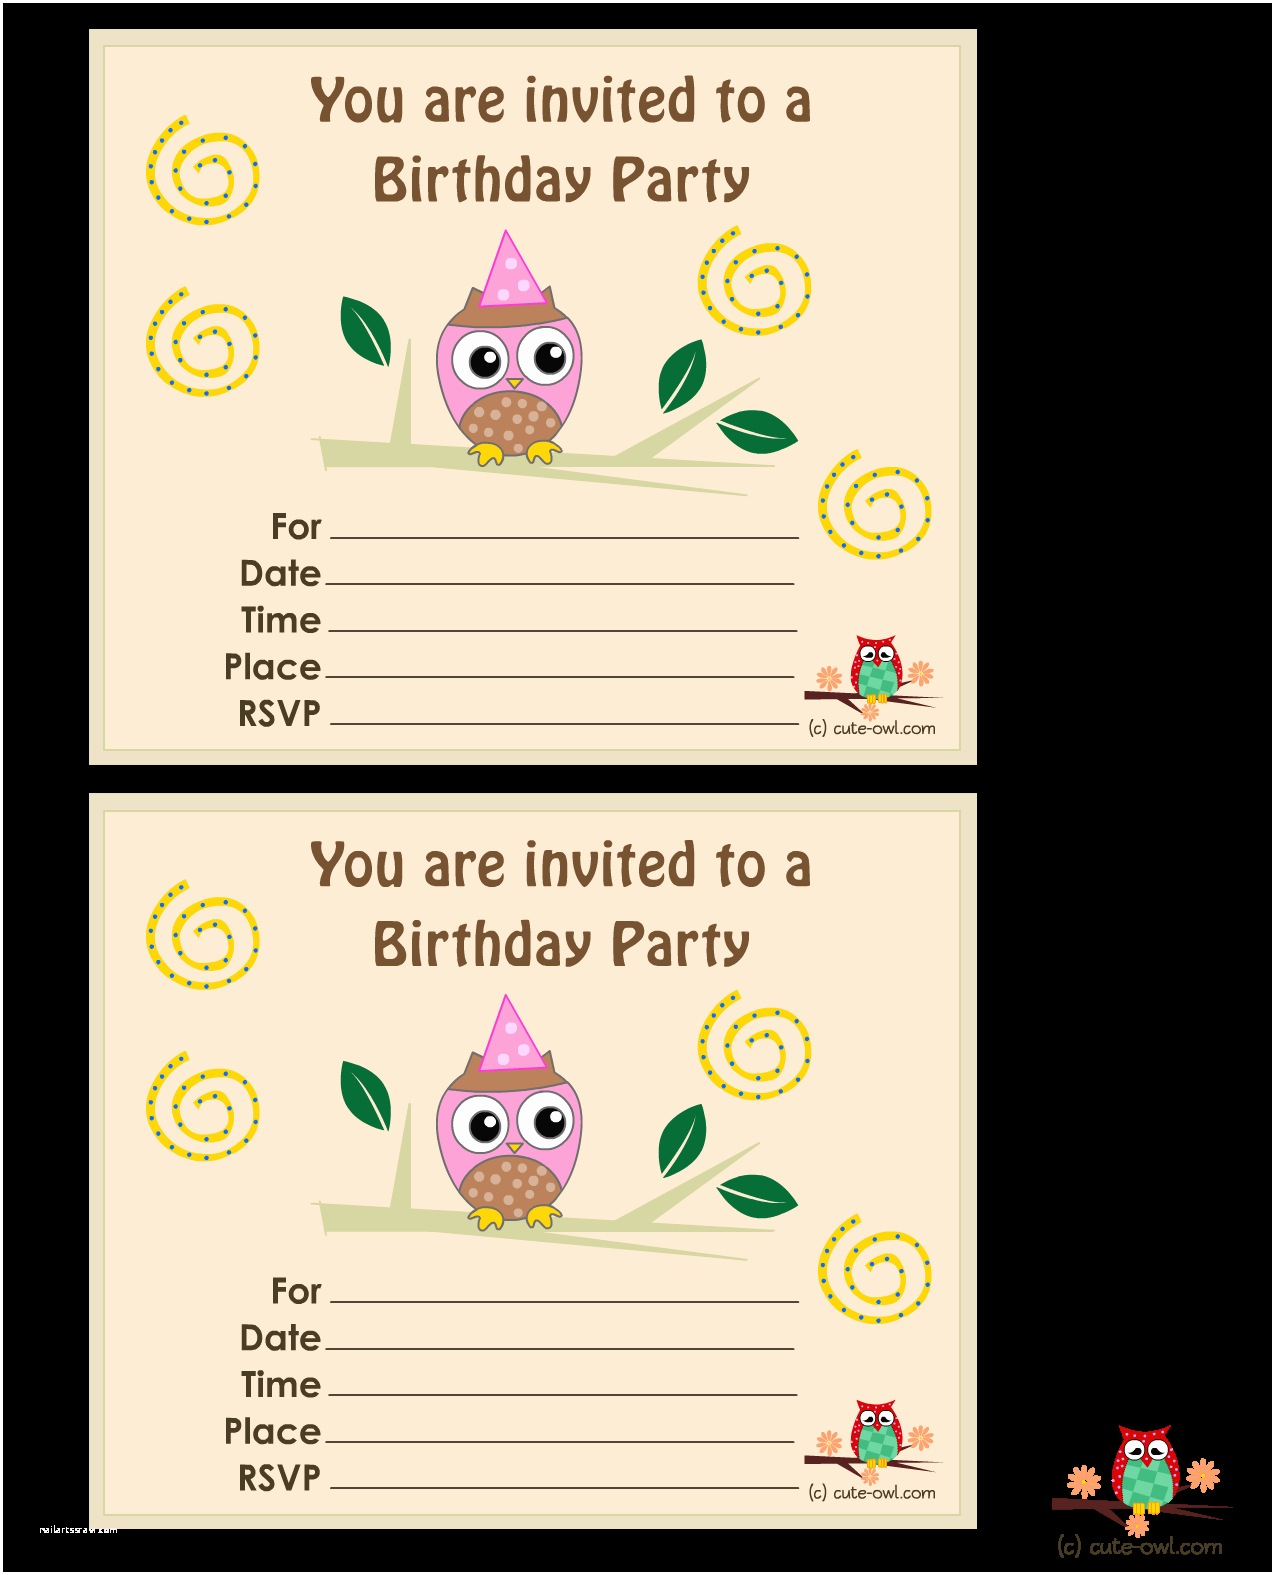 Birthday Party Invitation Card Free Printable Invitations for Boys Birthday Party